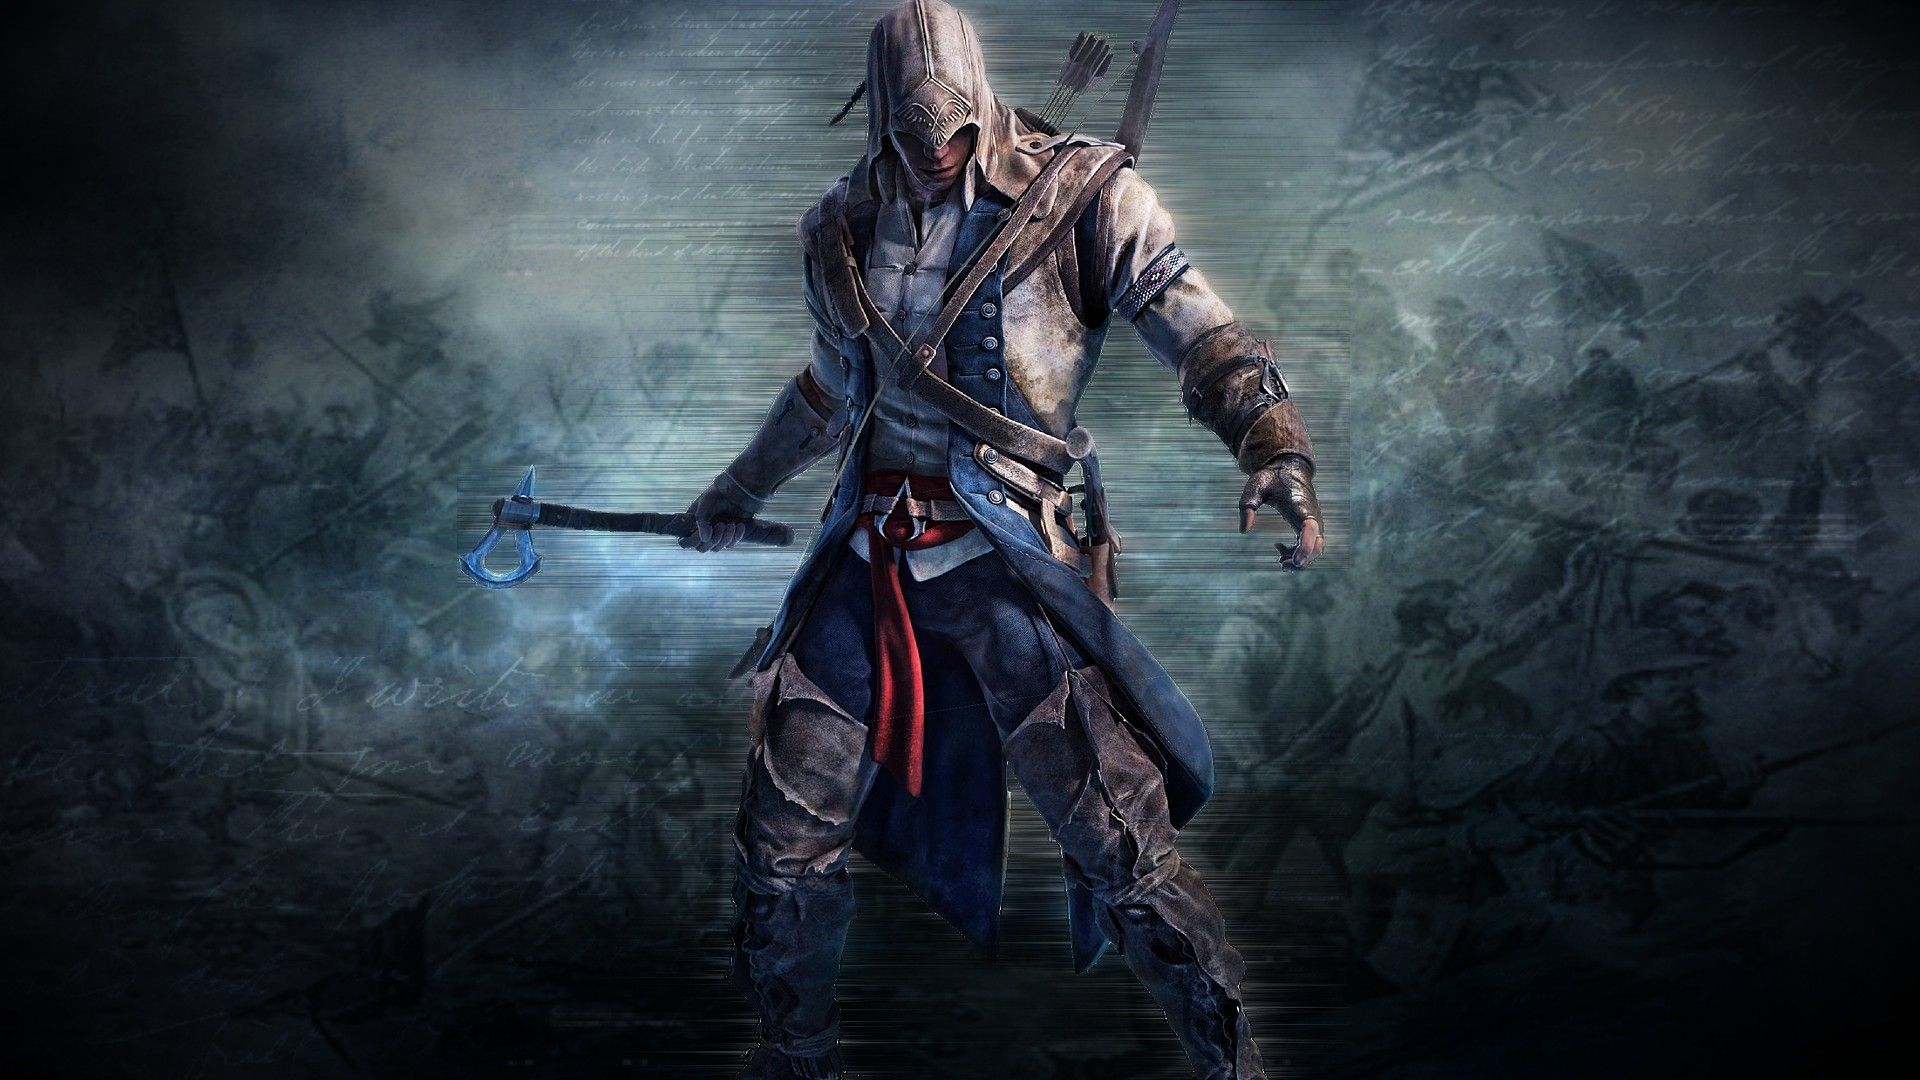 assassin's creed connor wallpaper for android ile ilgili